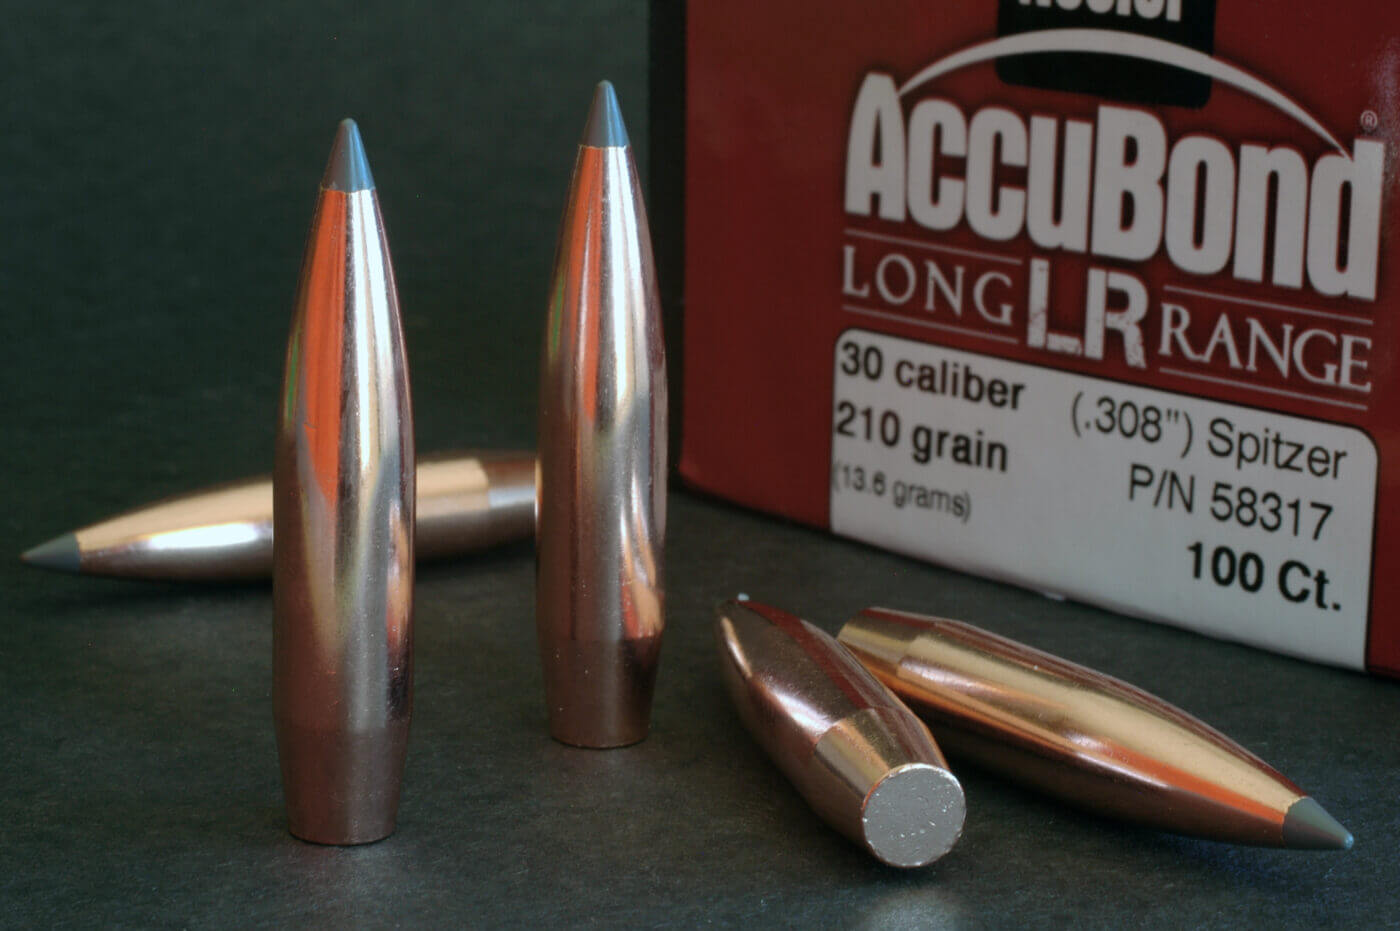 .308 caliber bullets work in both 7.62x51 and .308 Win loads